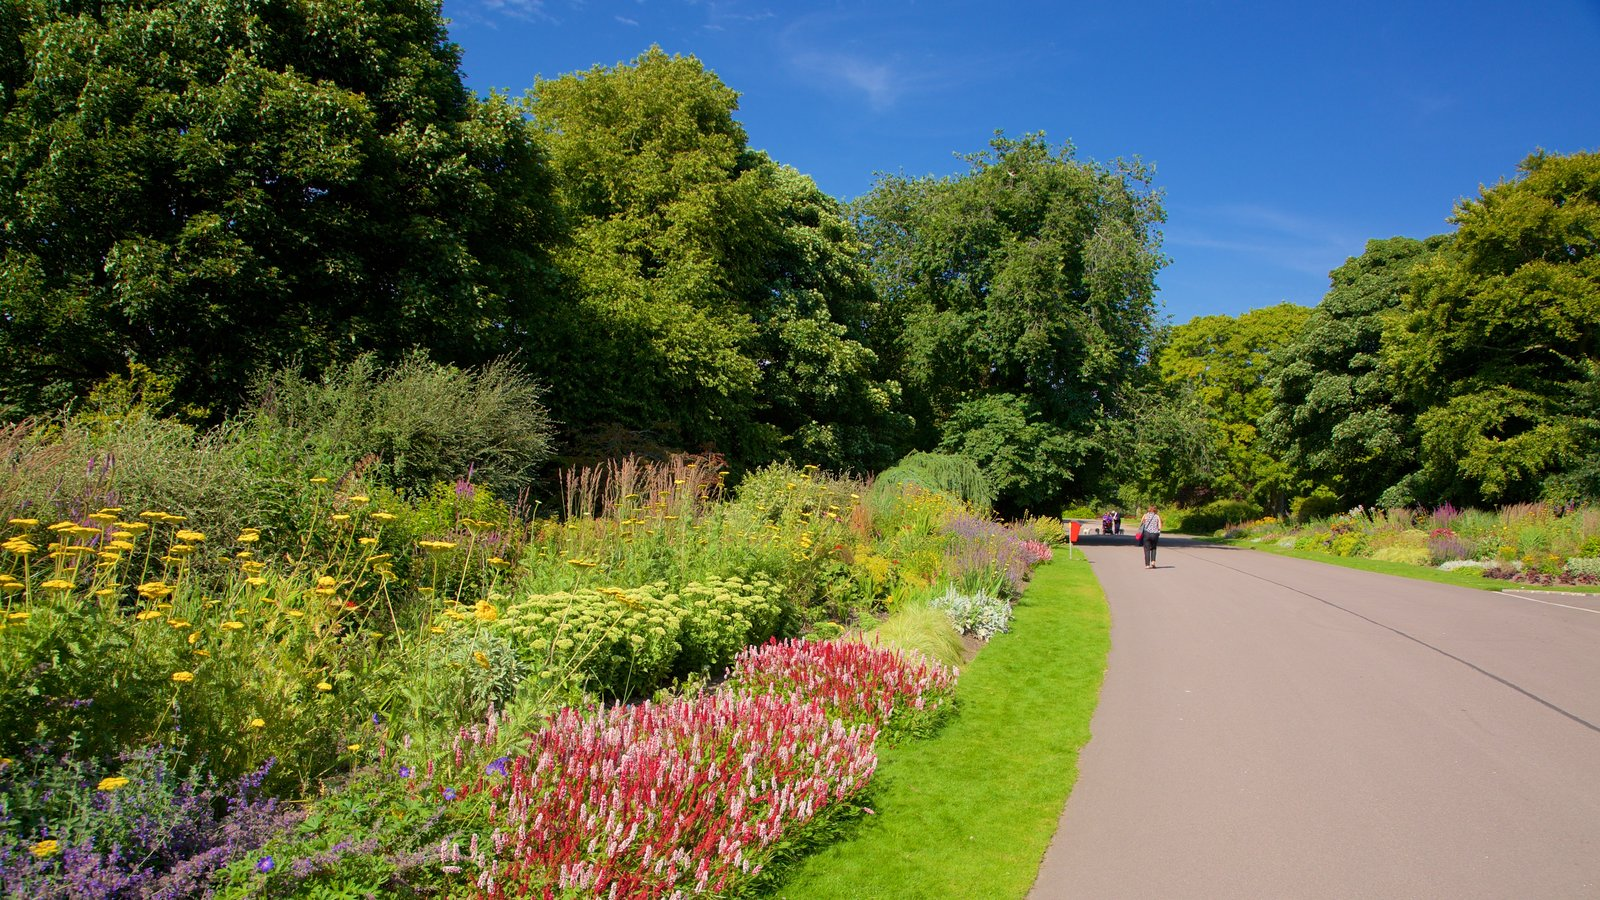 Duthie Park Winter Gardens featuring flowers, wild flowers and a park